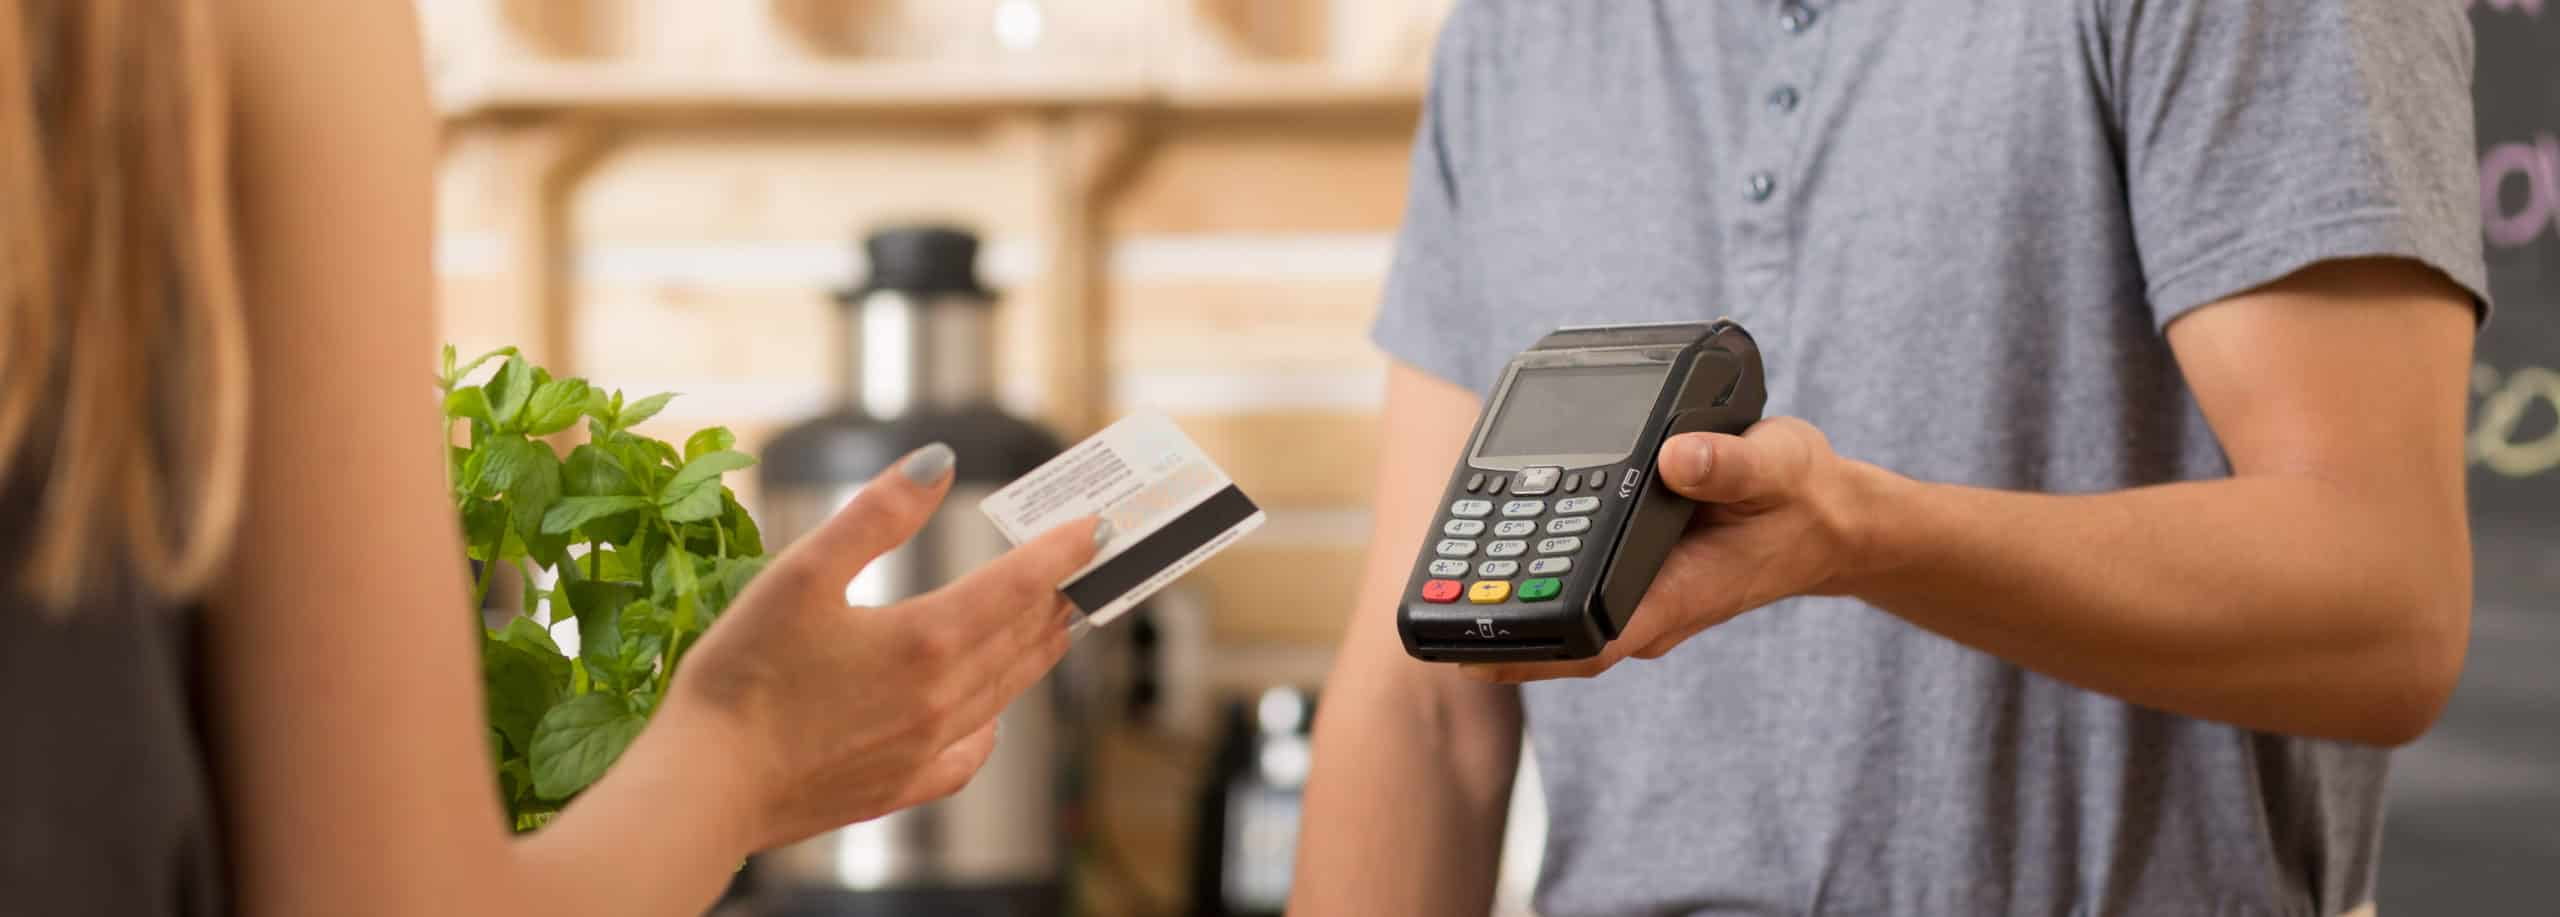 Small business customer paying with debit card